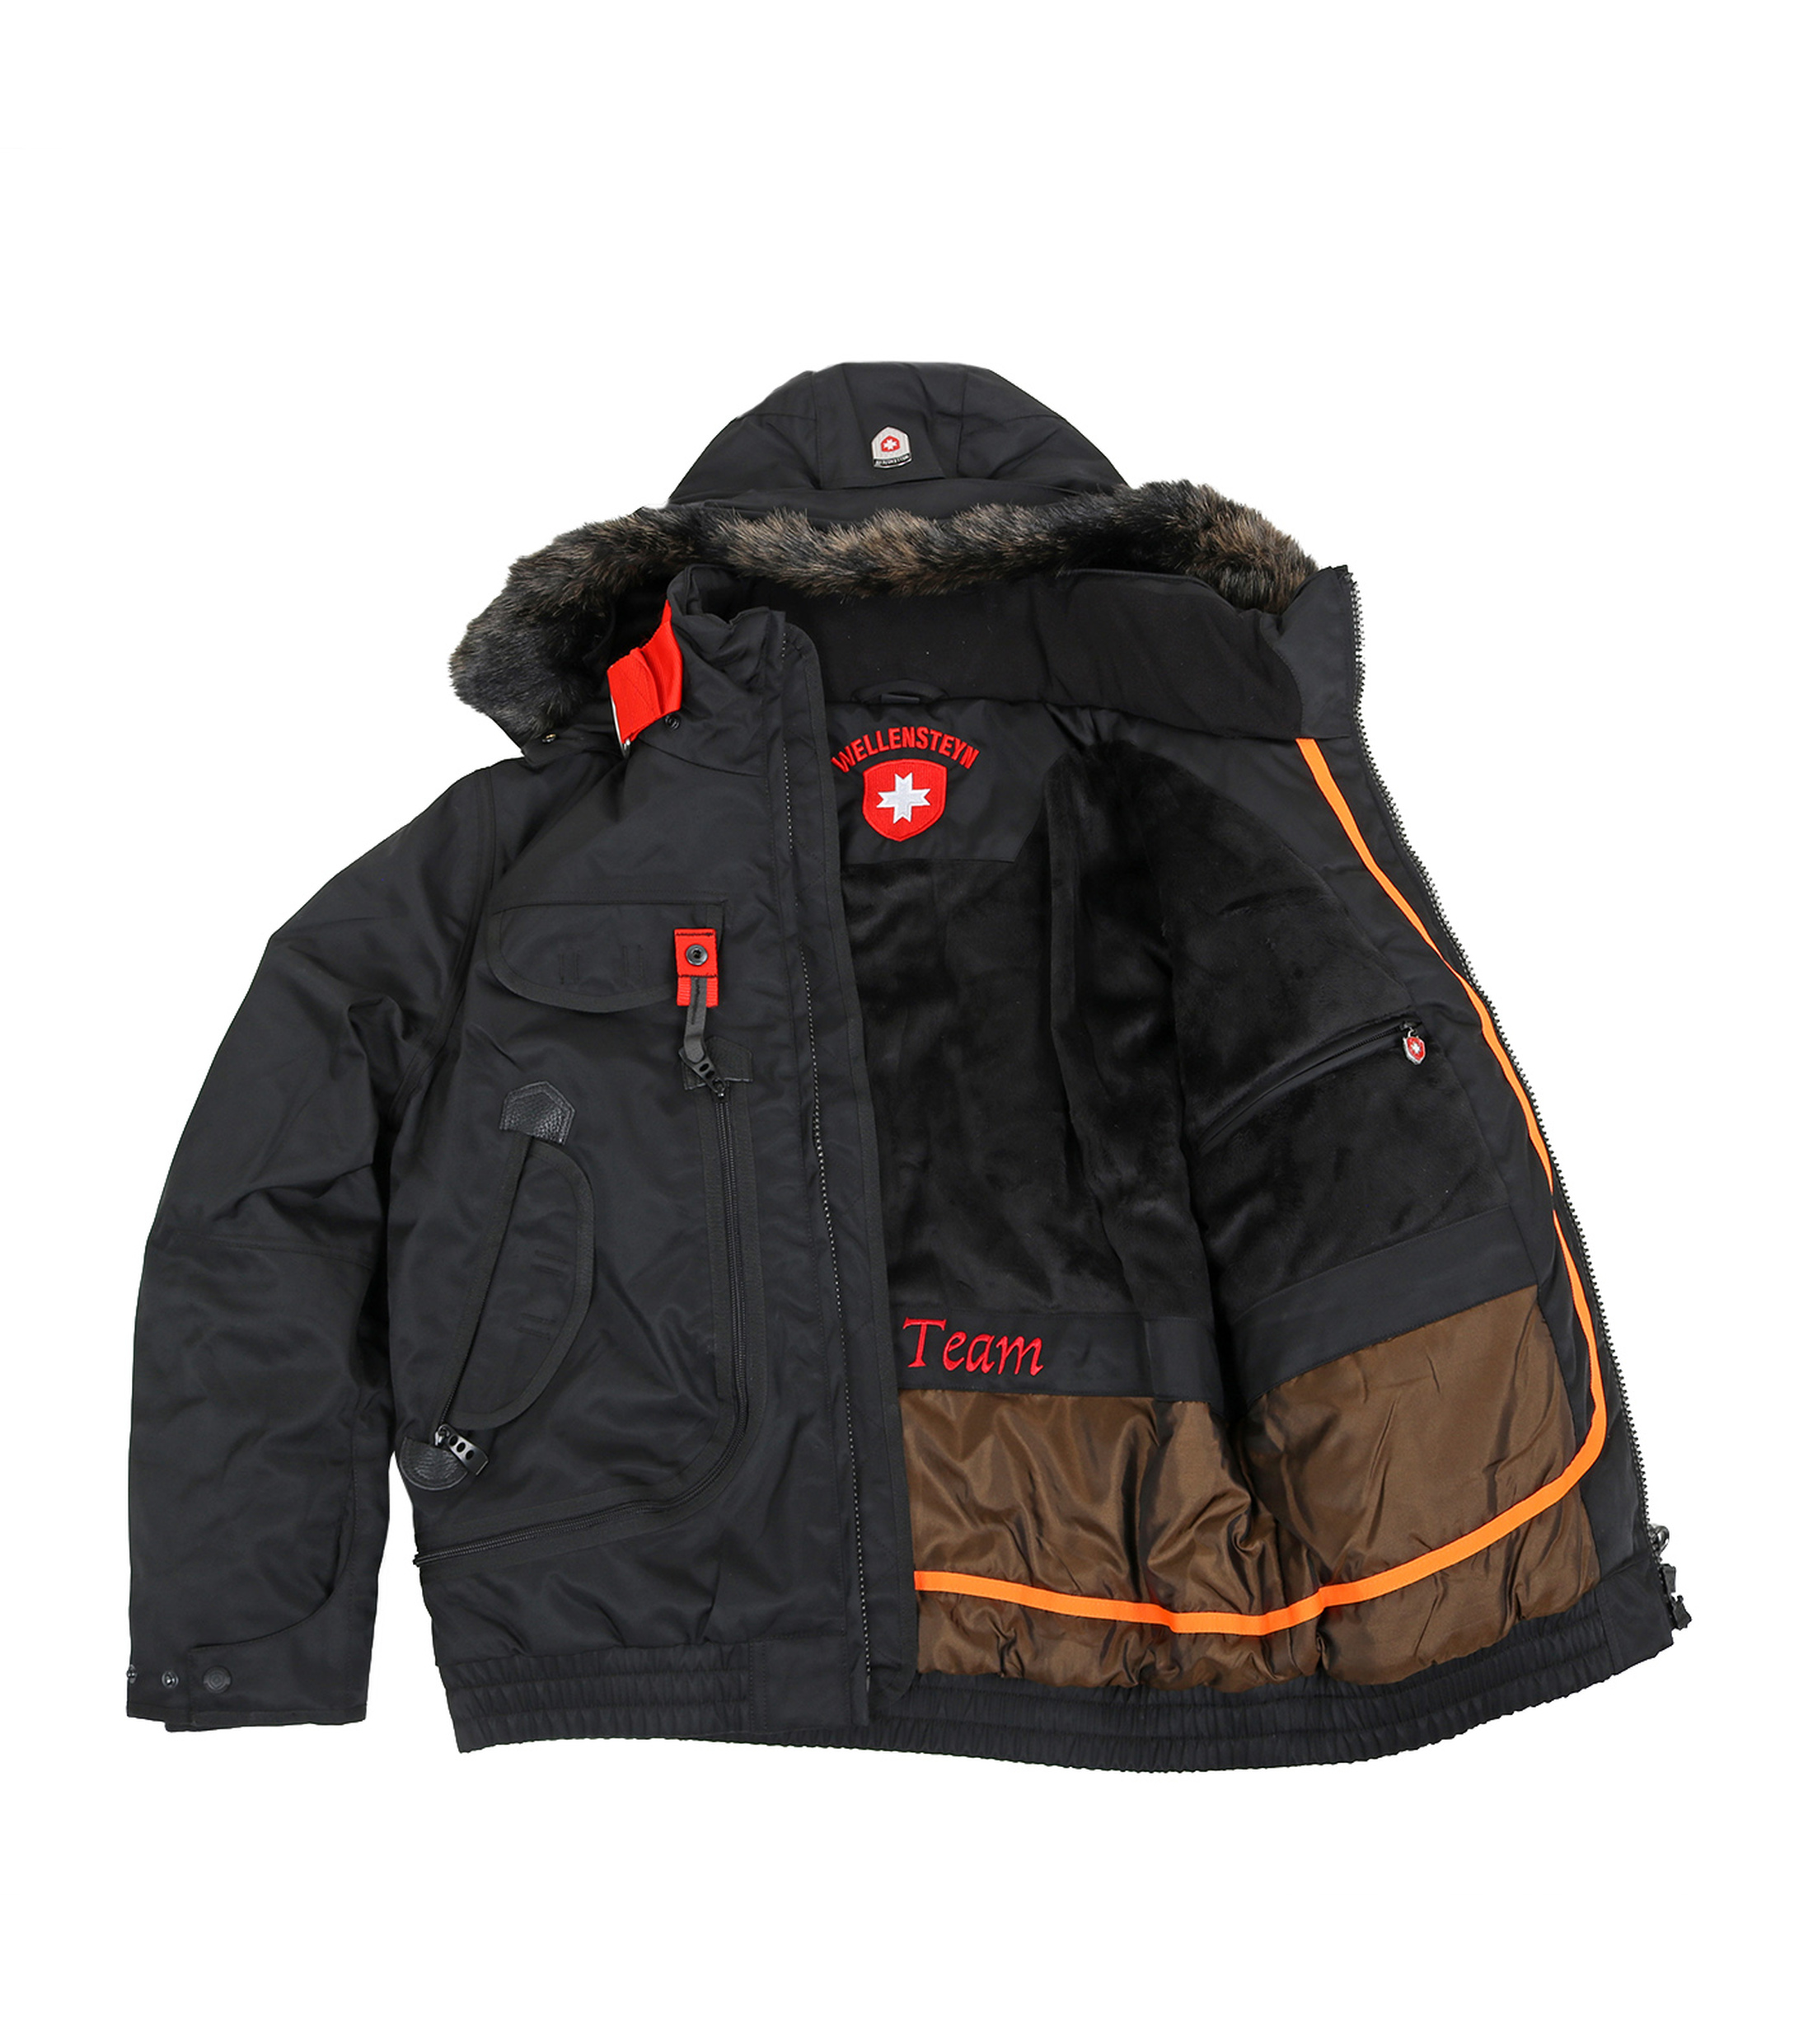 Wellensteyn Rescue Jacket Black foto 4